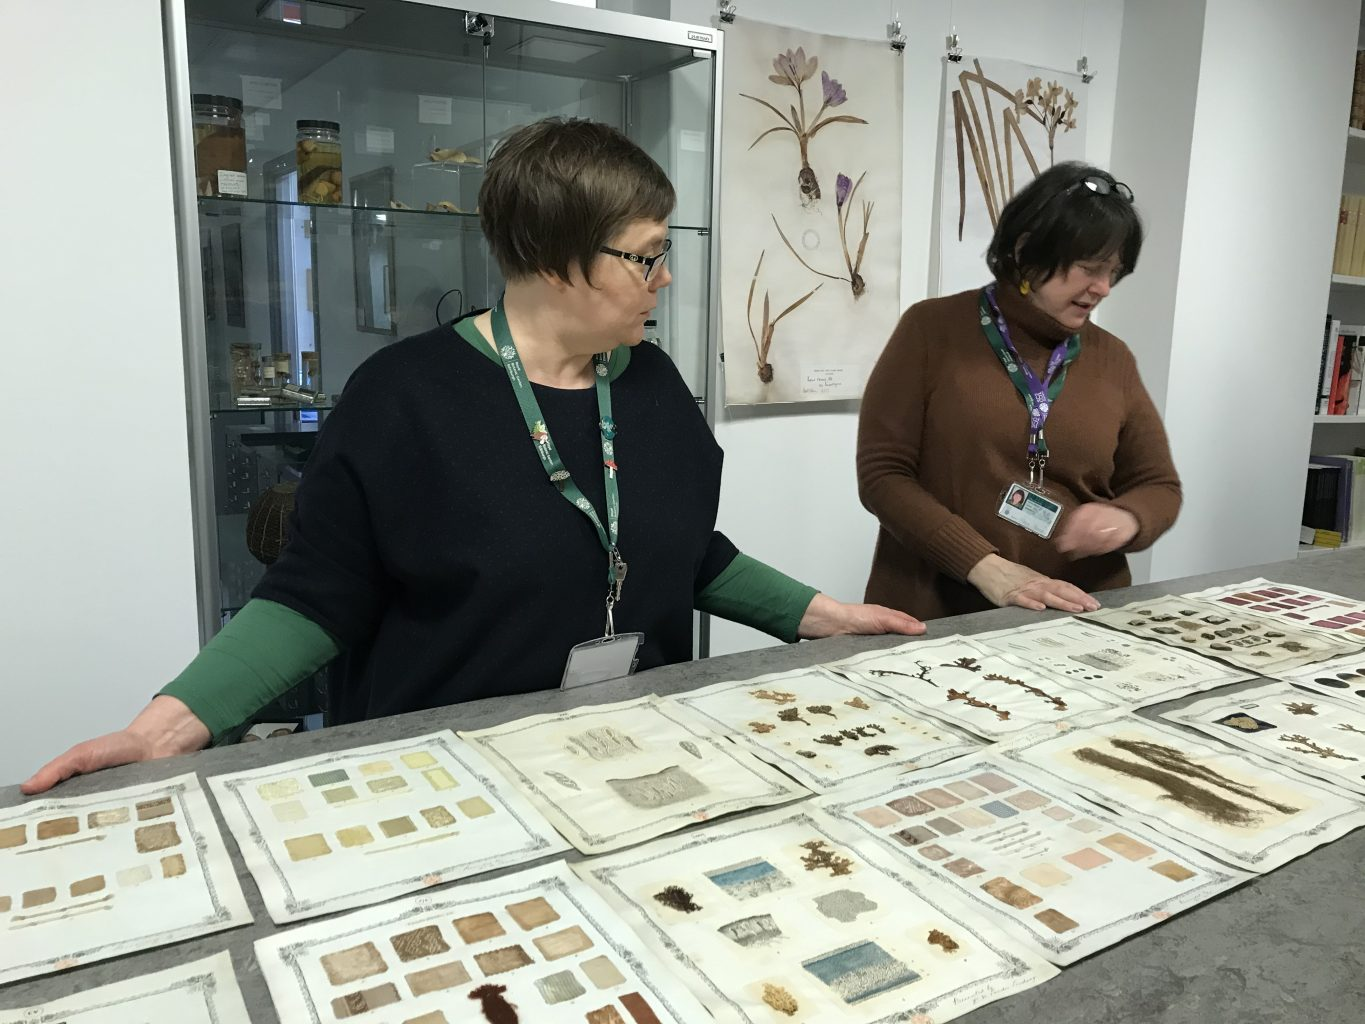 Two women standing at a high surface viewing A4 sized painted botanical studies, with botanical paintings and a display case on the wall behind